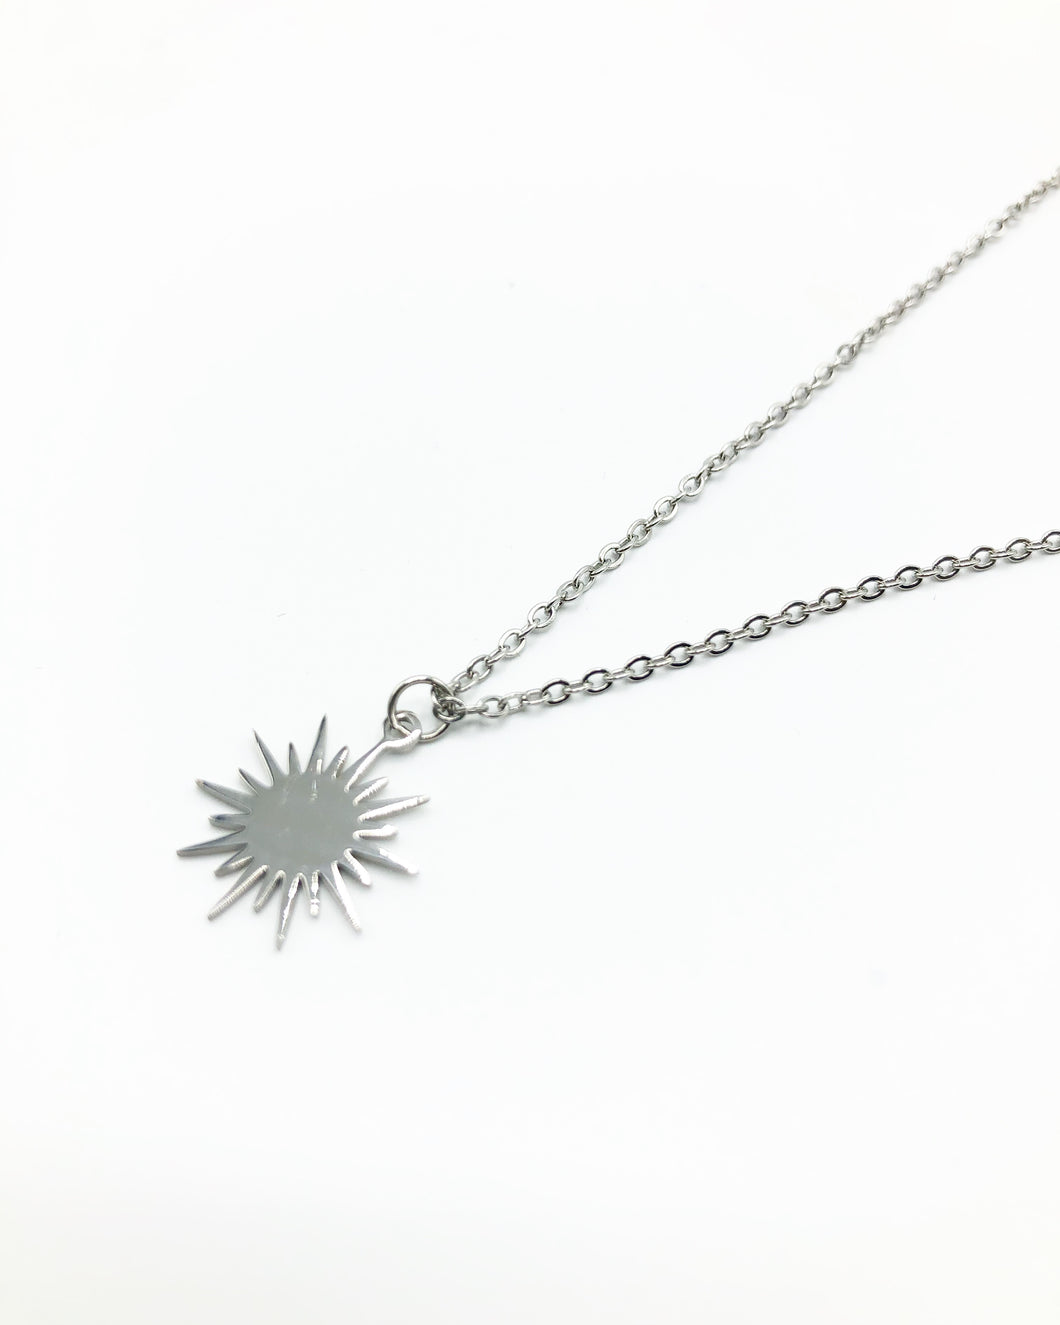 Sunbeam Charm Necklace In Silver